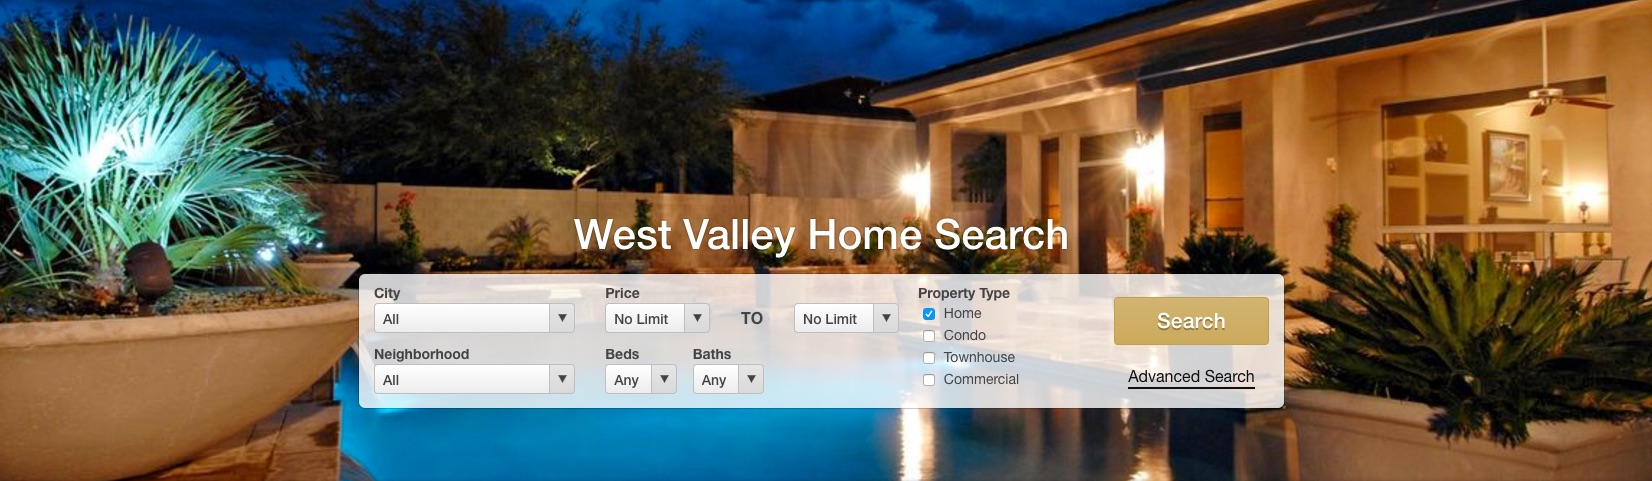 West Valley Home Search